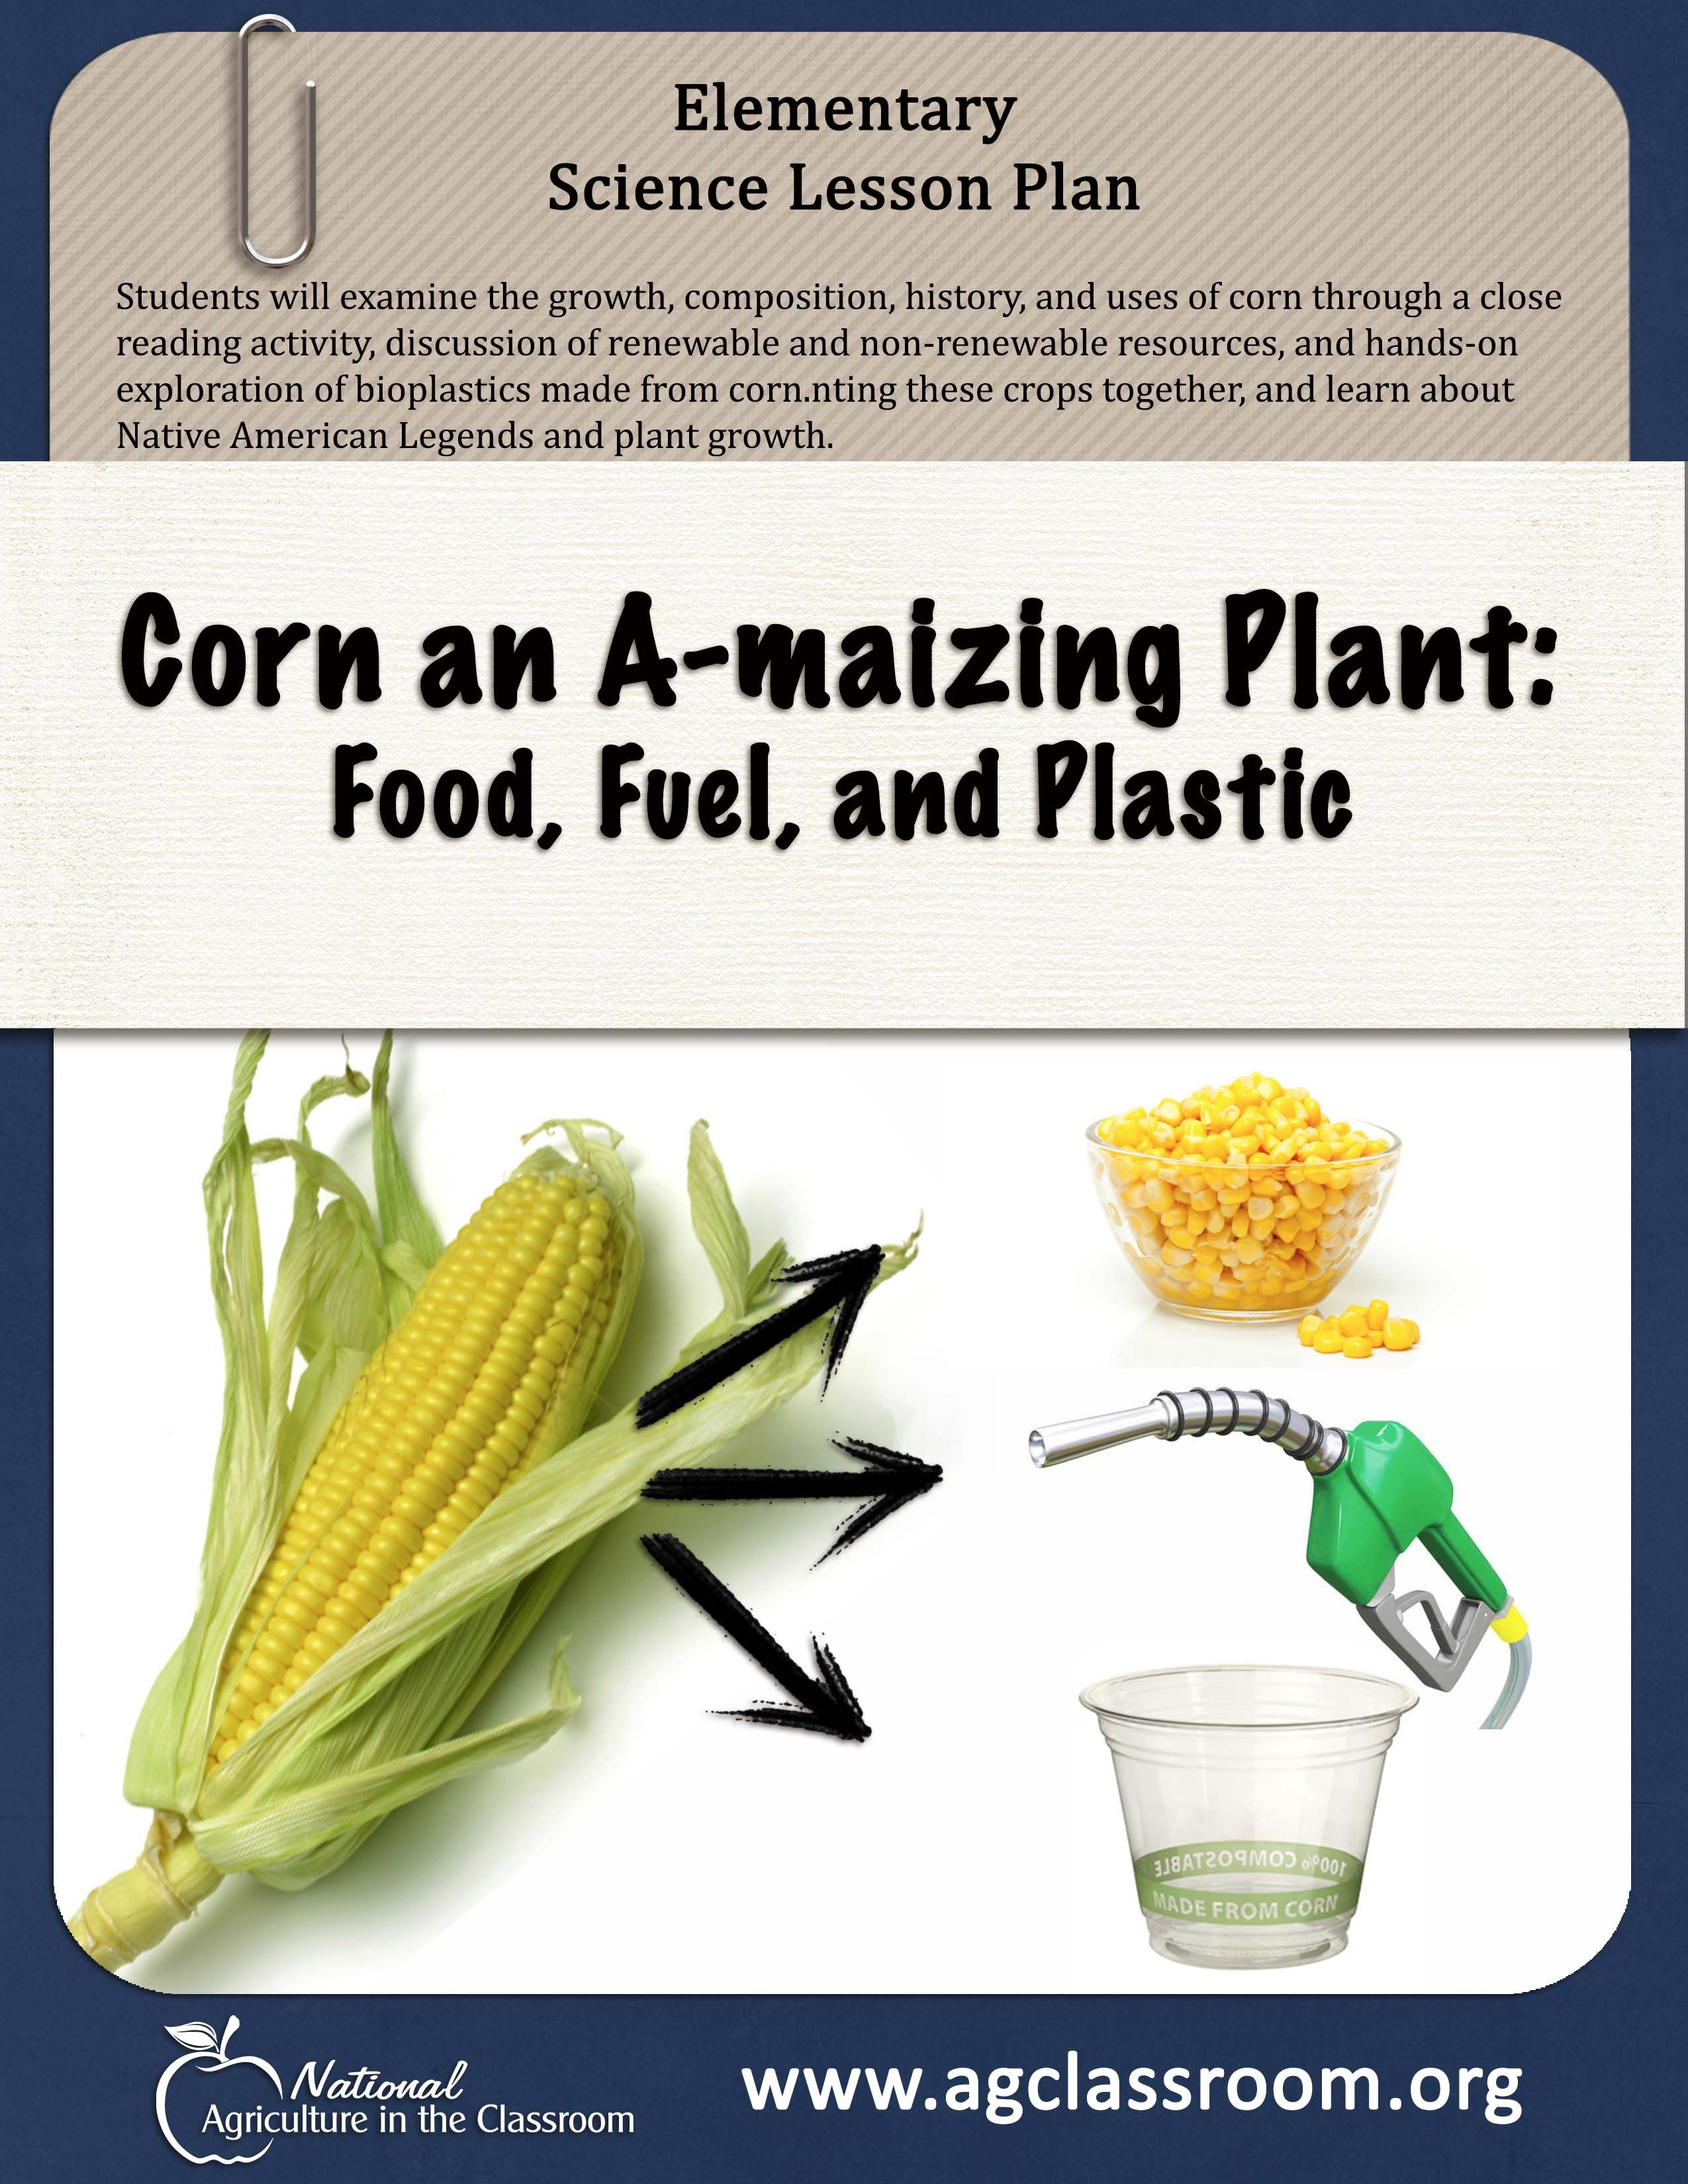 worksheet Renewable And Nonrenewable Resources Worksheets lesson plan teaching about renewable and non resources make plastic out of corn